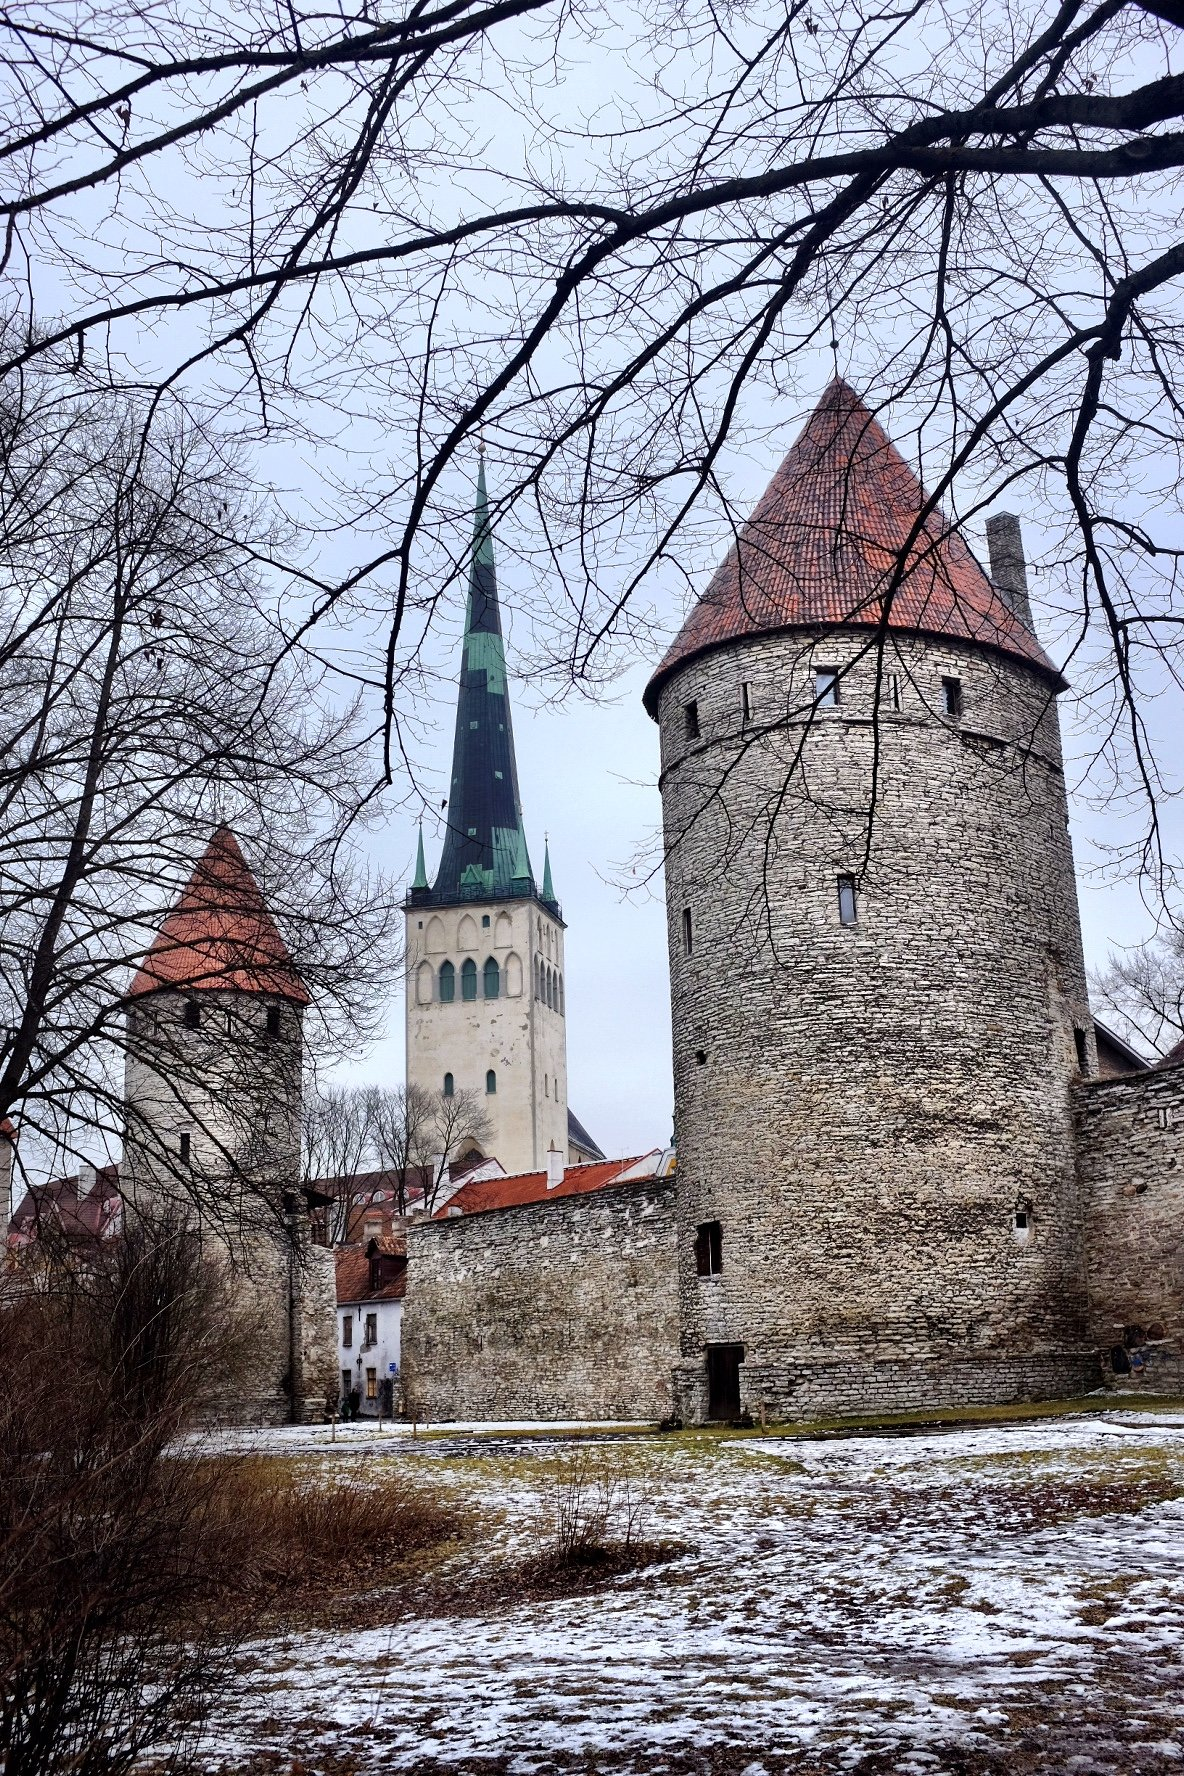 St. Olavs Church and Wall Tower in Tallinn